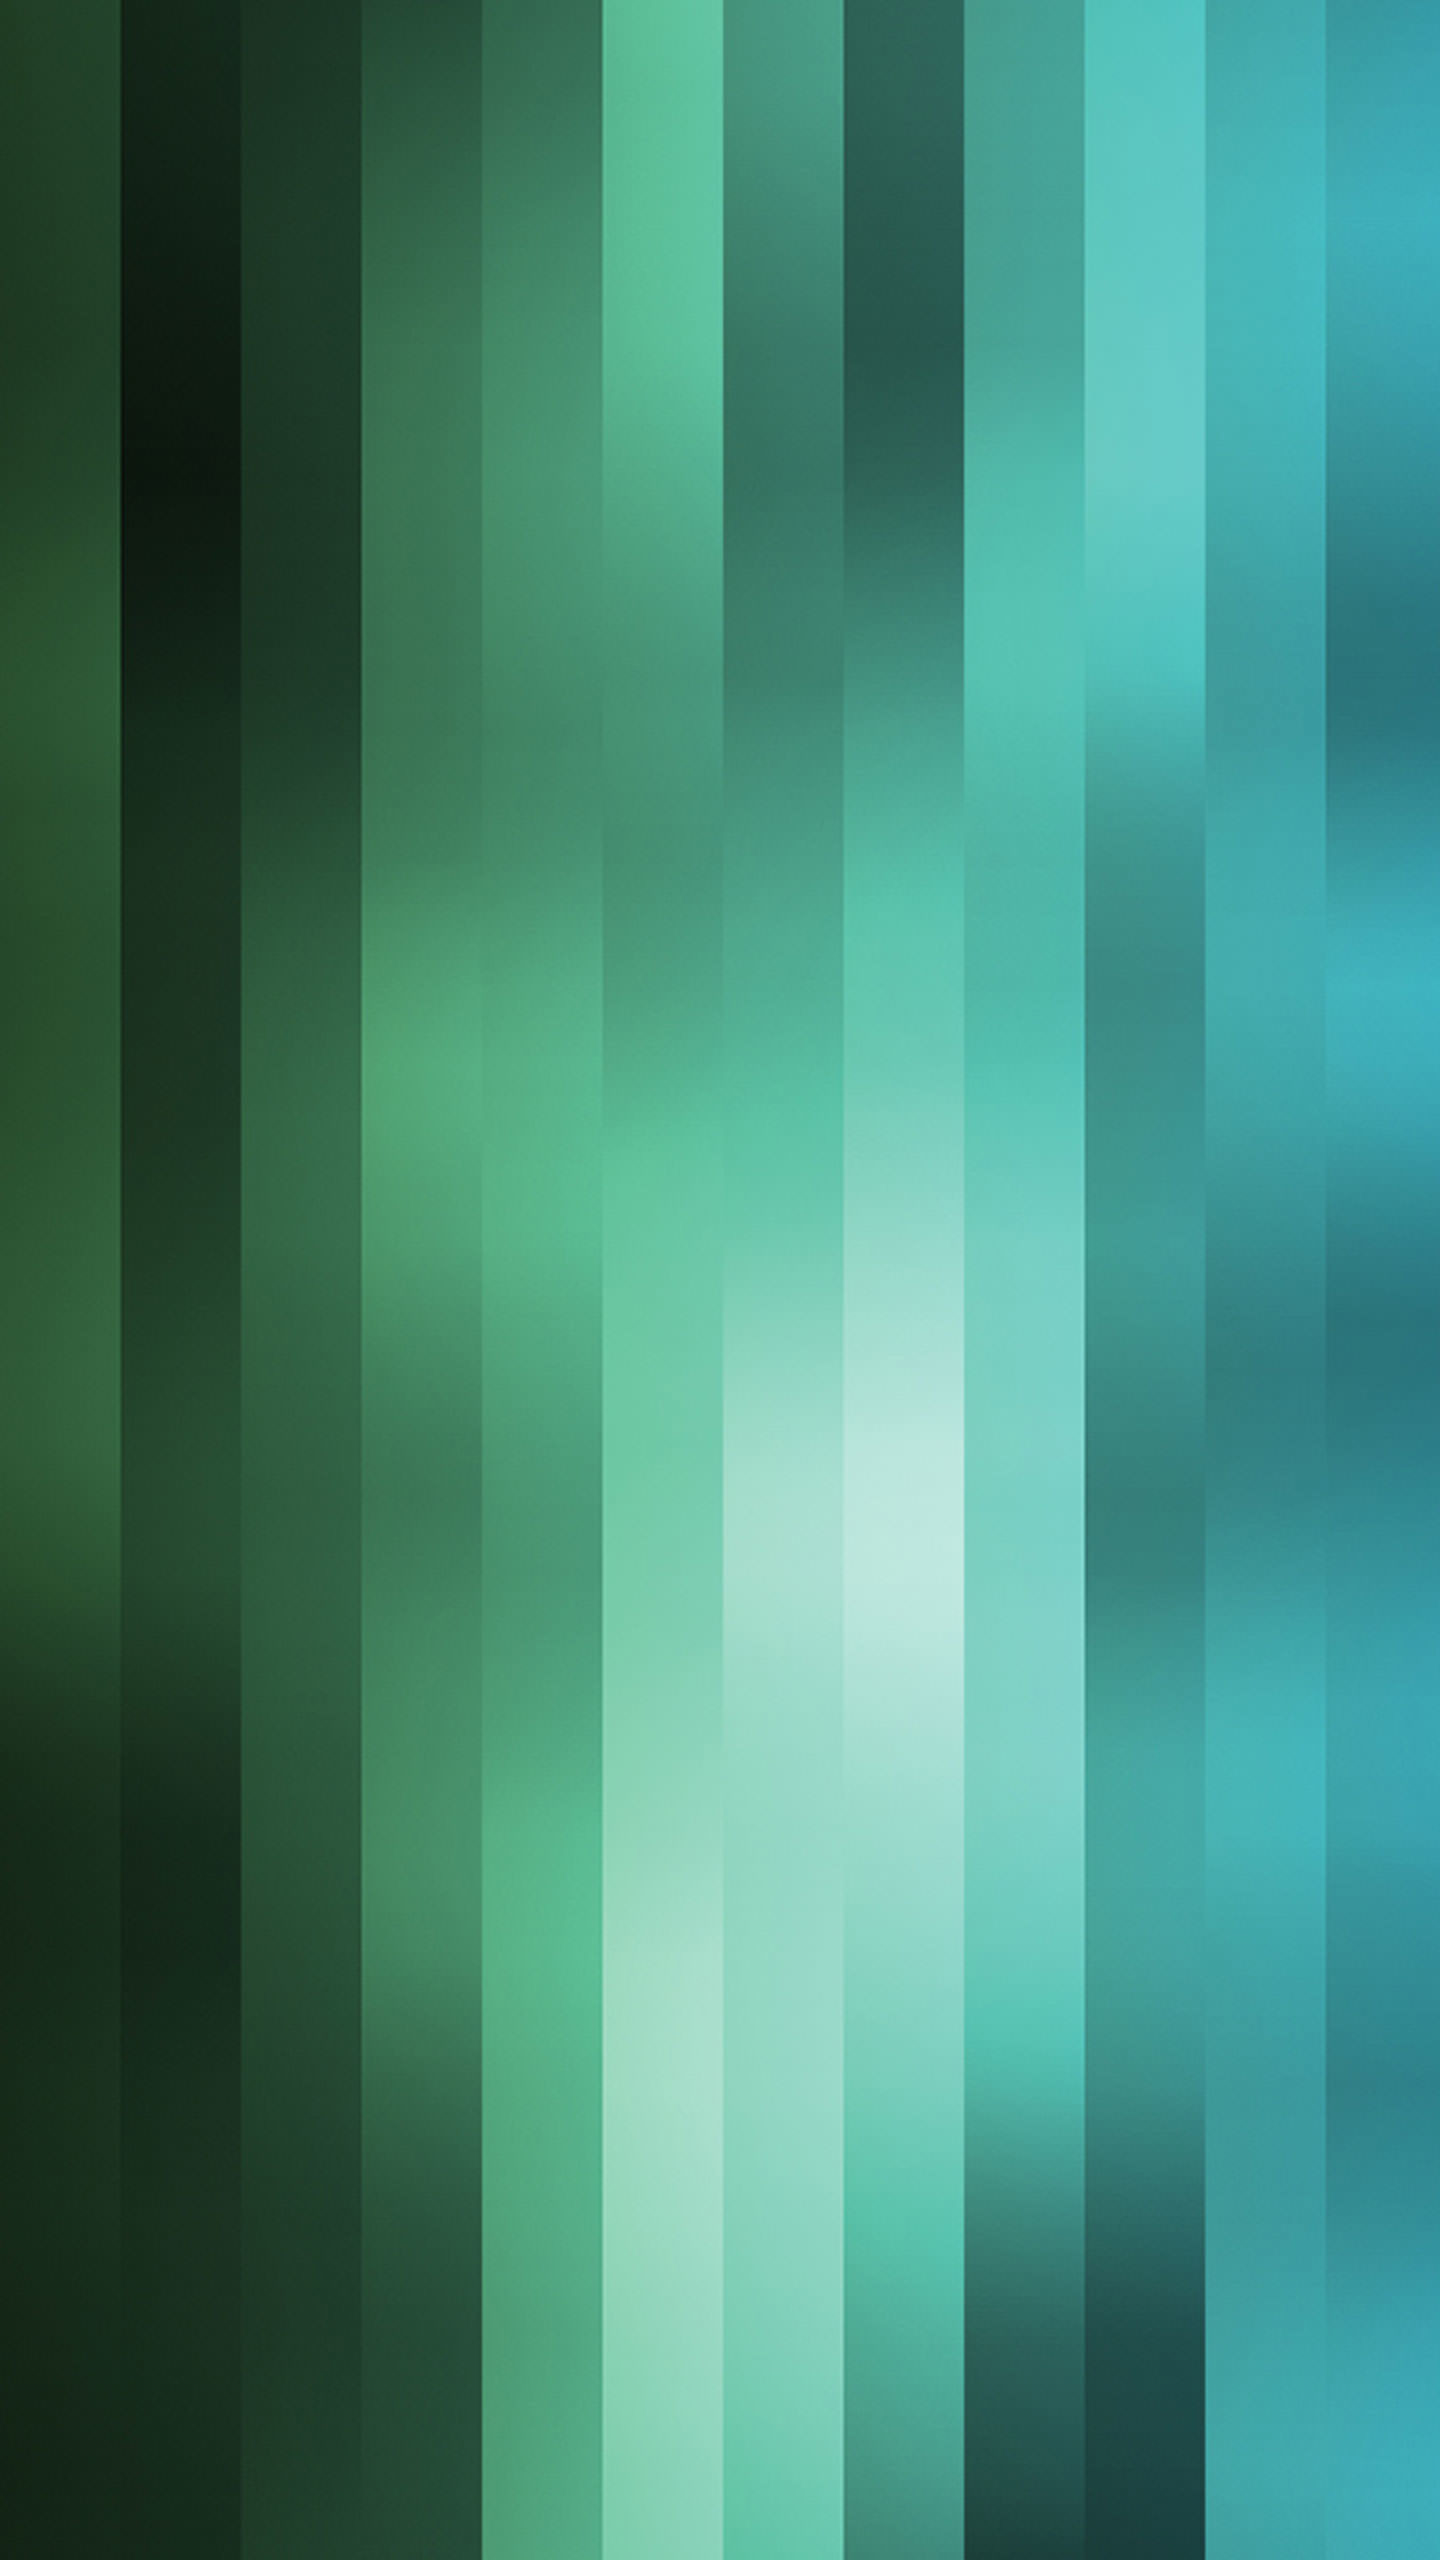 Vertical Blue And Green Stripes Wallpaper